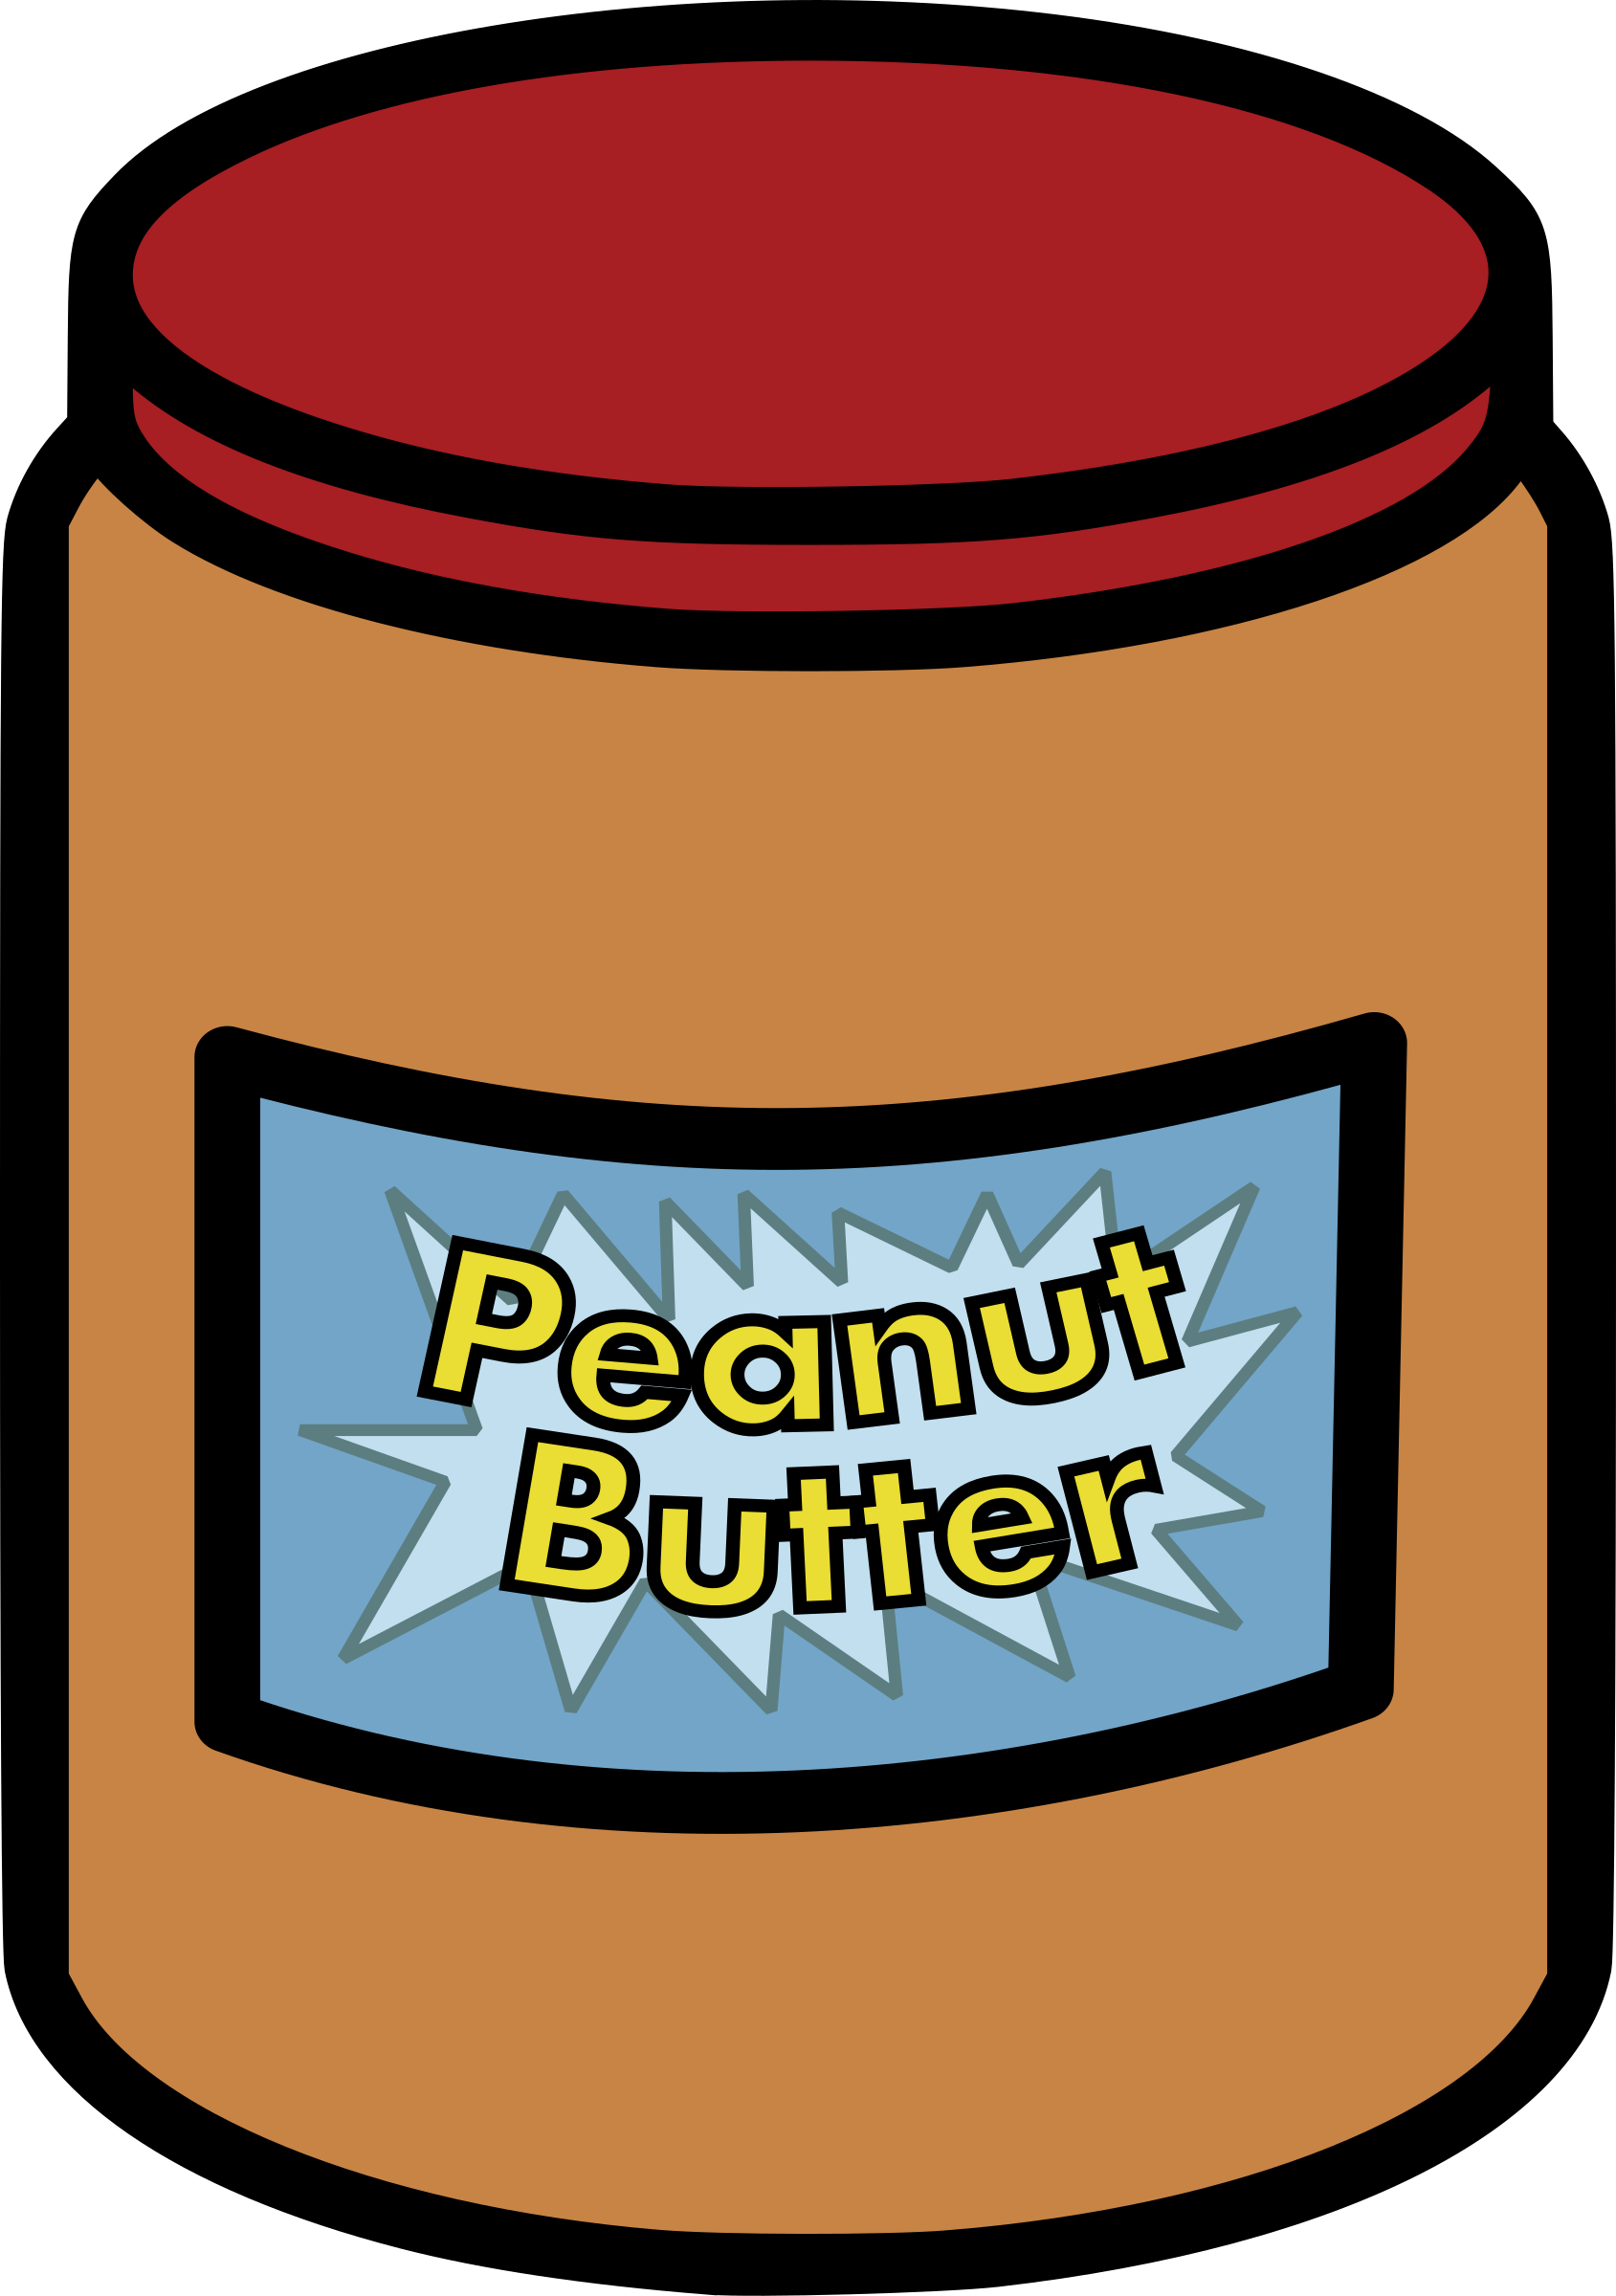 Trend Peanut Football Transparent & Png Clipart Free.